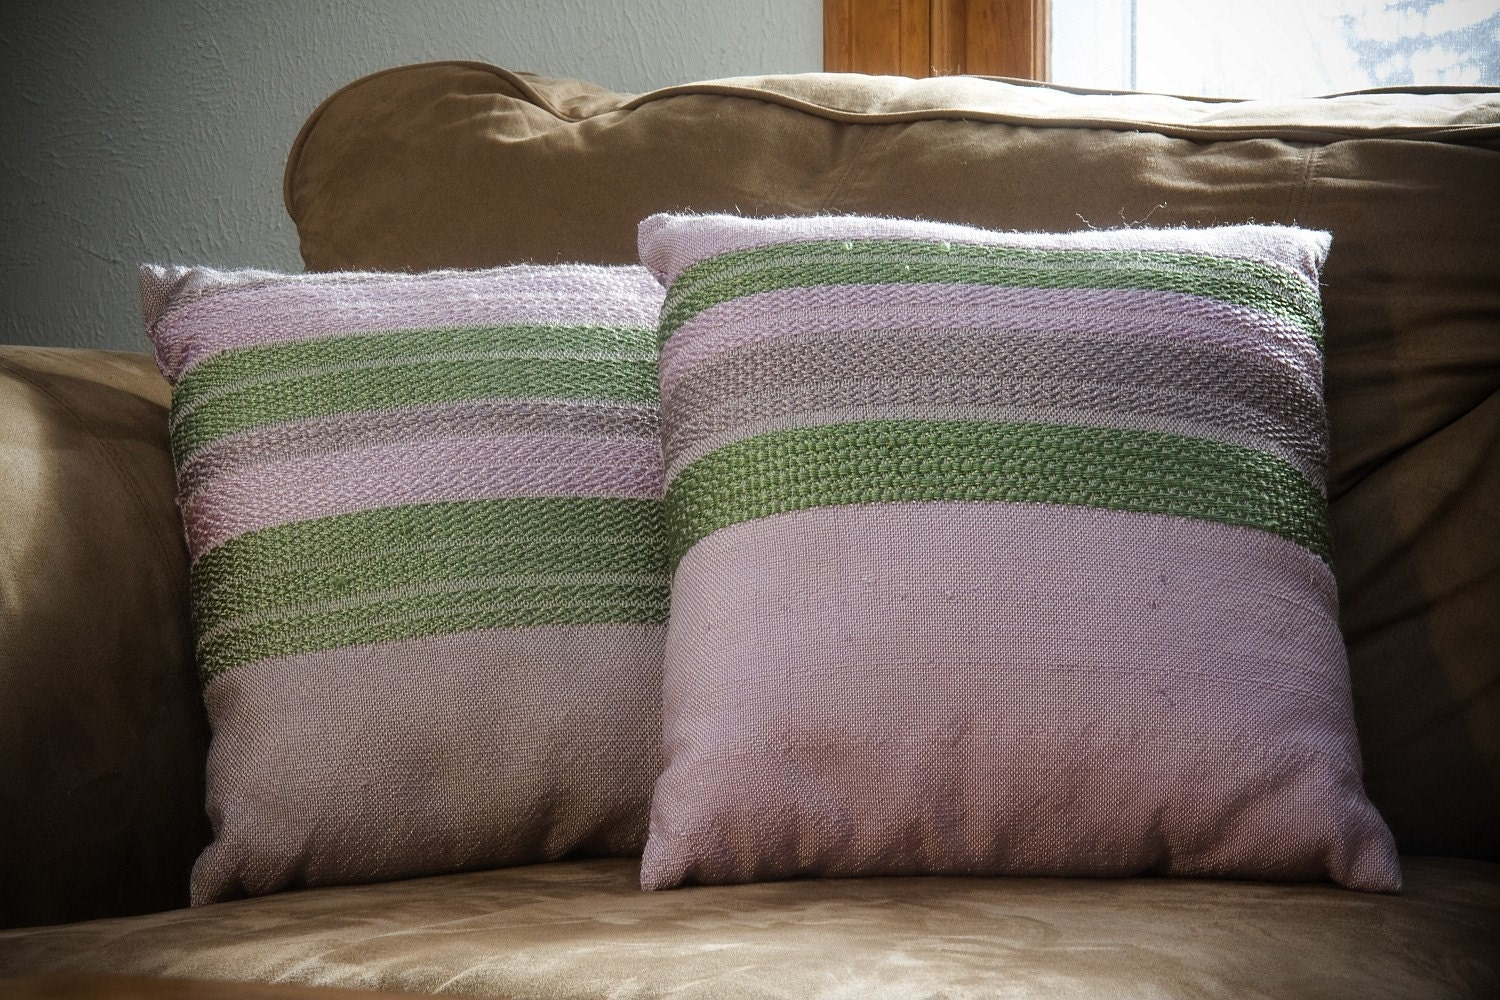 Lavender and Green Wool and Rayon Pillow Set - Hand Woven - mariehelenecreations